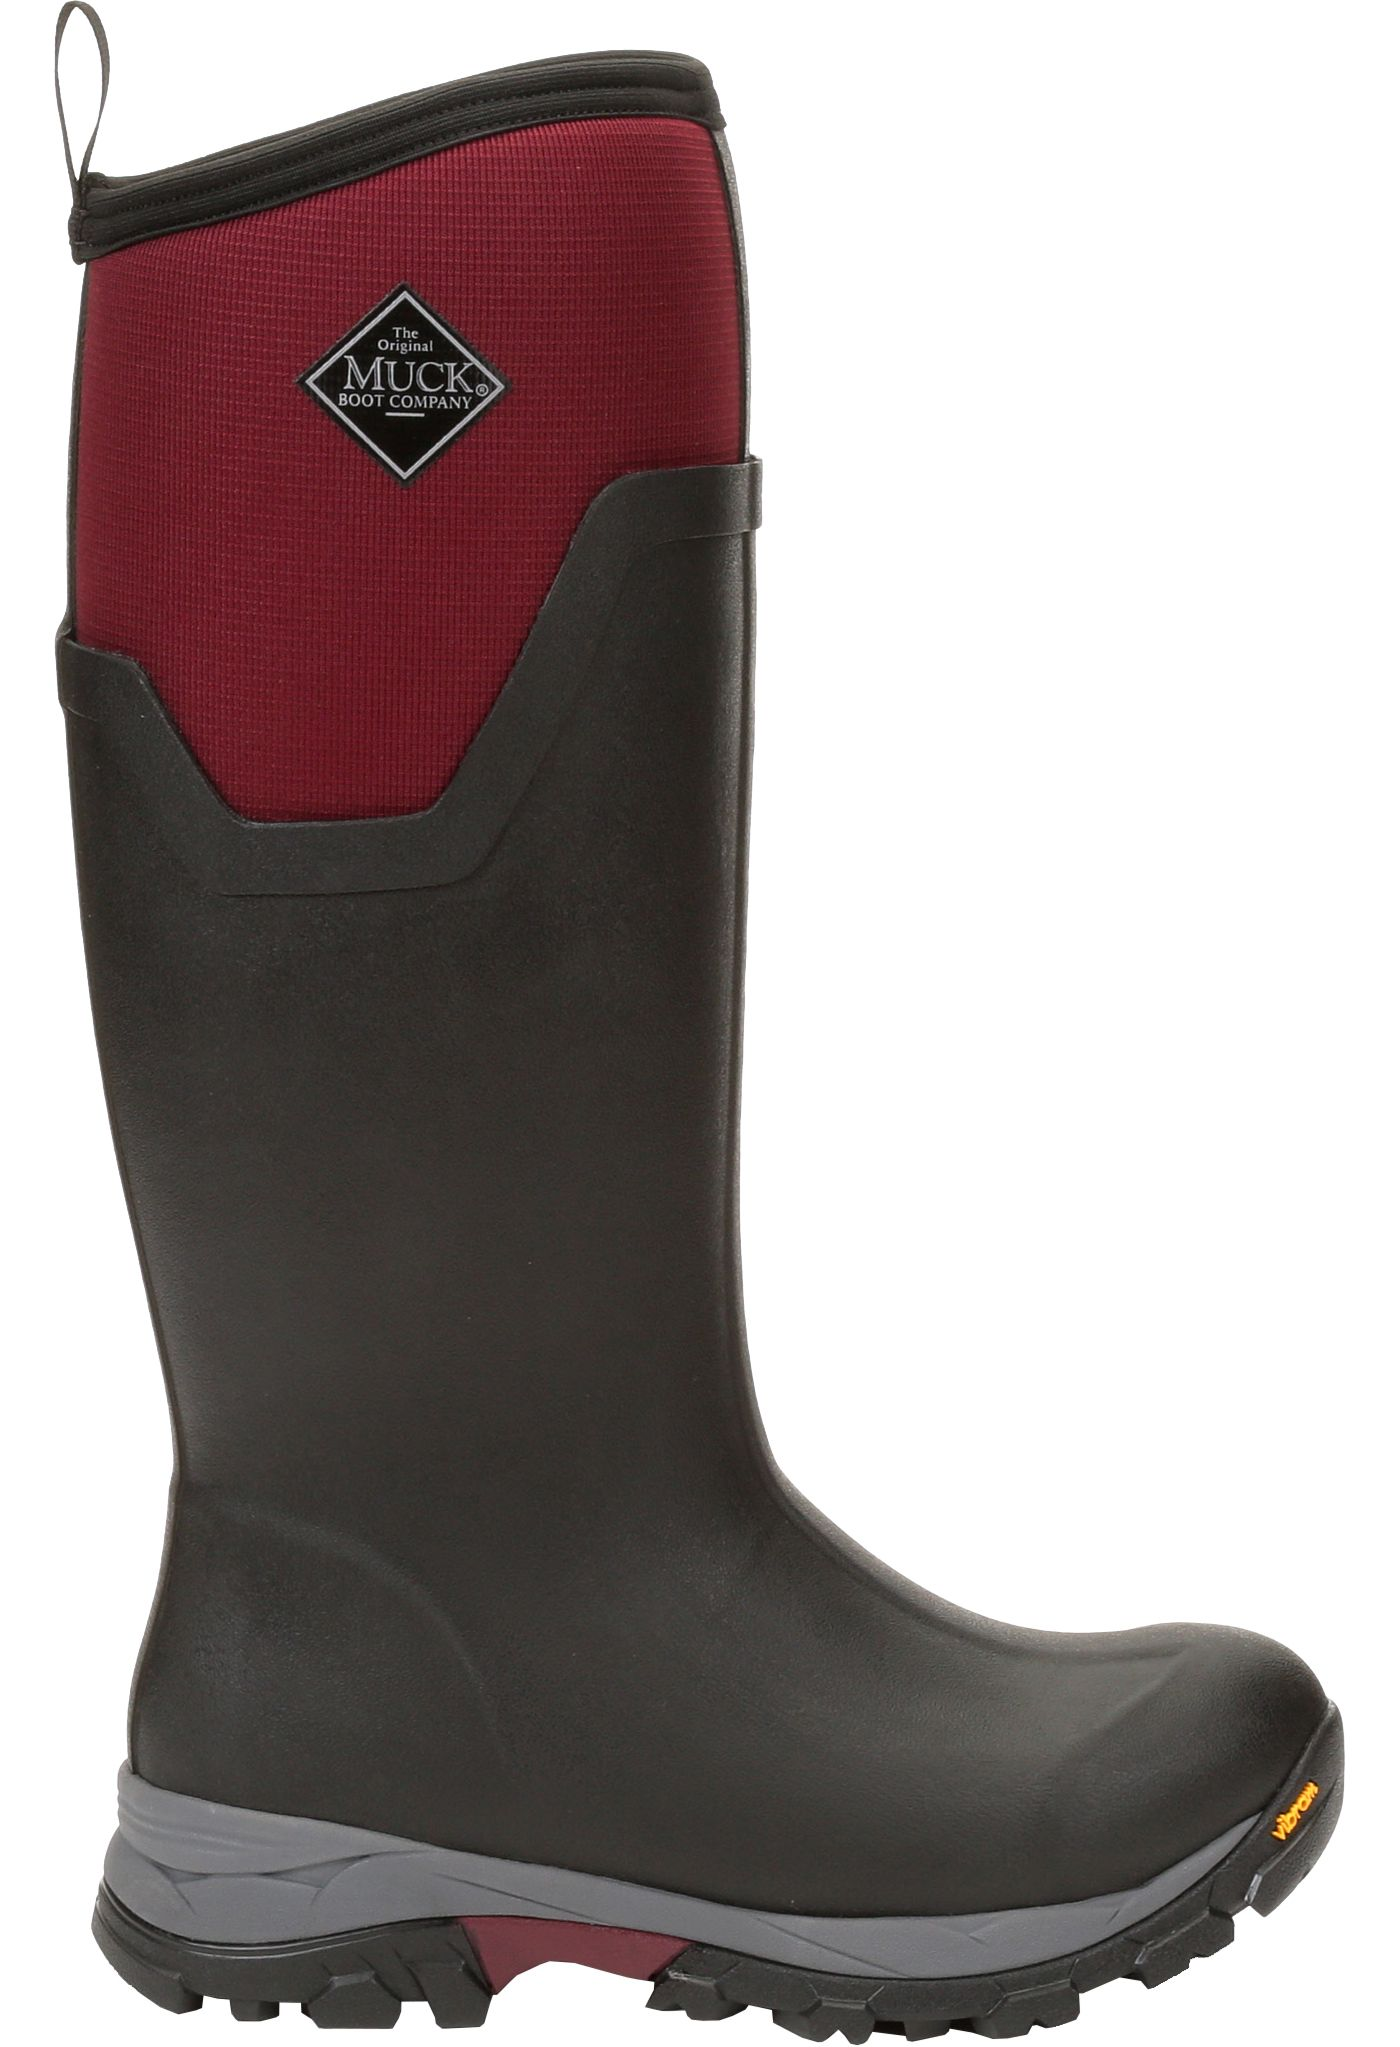 Muck Boots Women's Arctic Ice II Tall Winter Boots